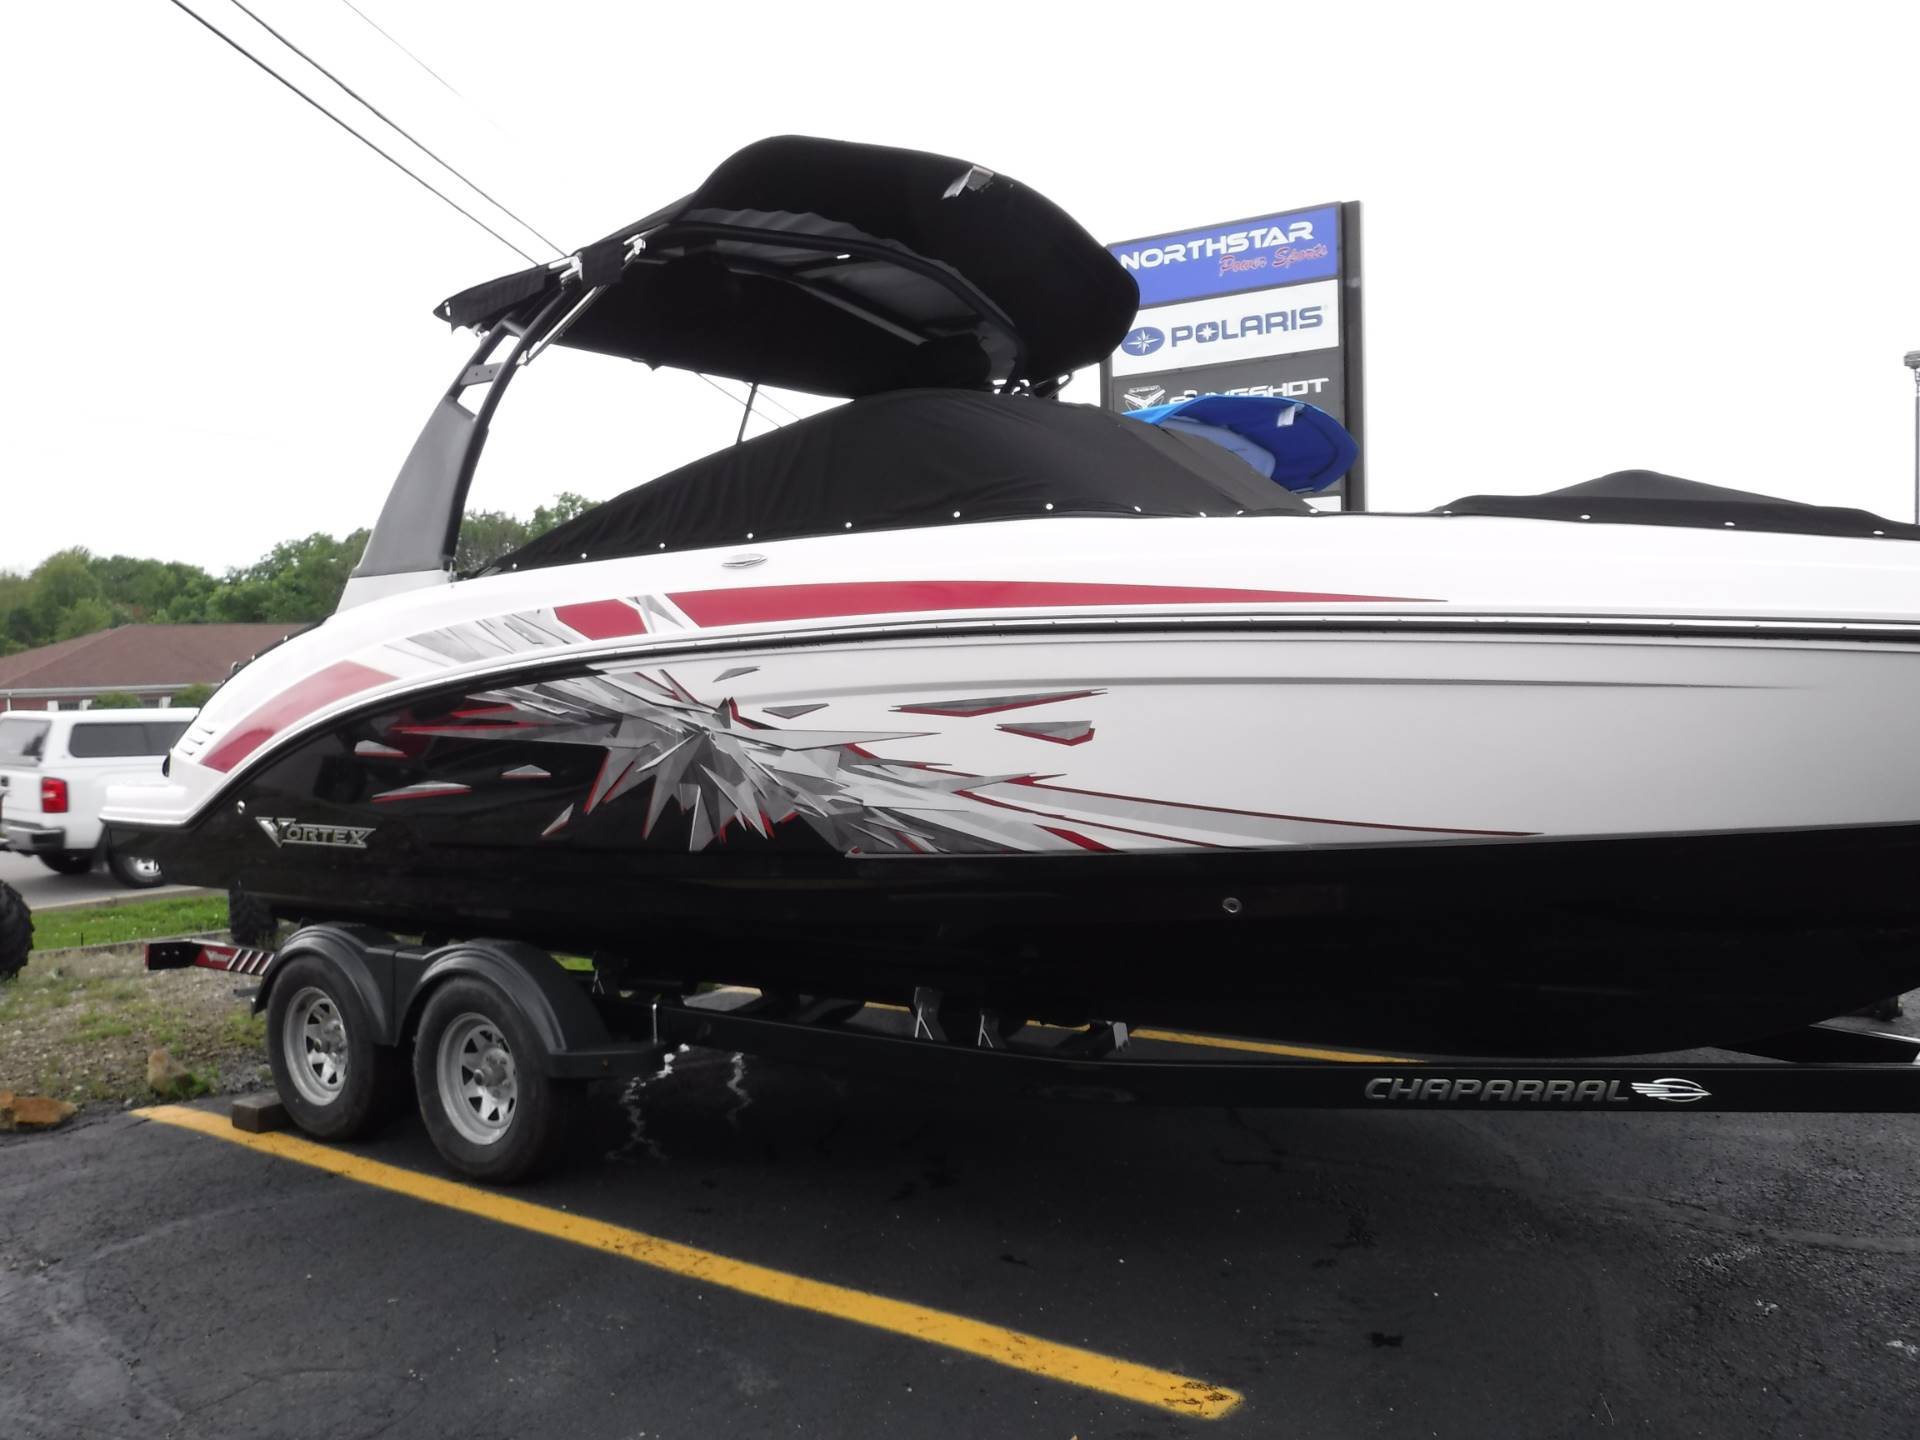 2019 Chaparral 2430 VORTEX VRX in Hermitage, Pennsylvania - Photo 2